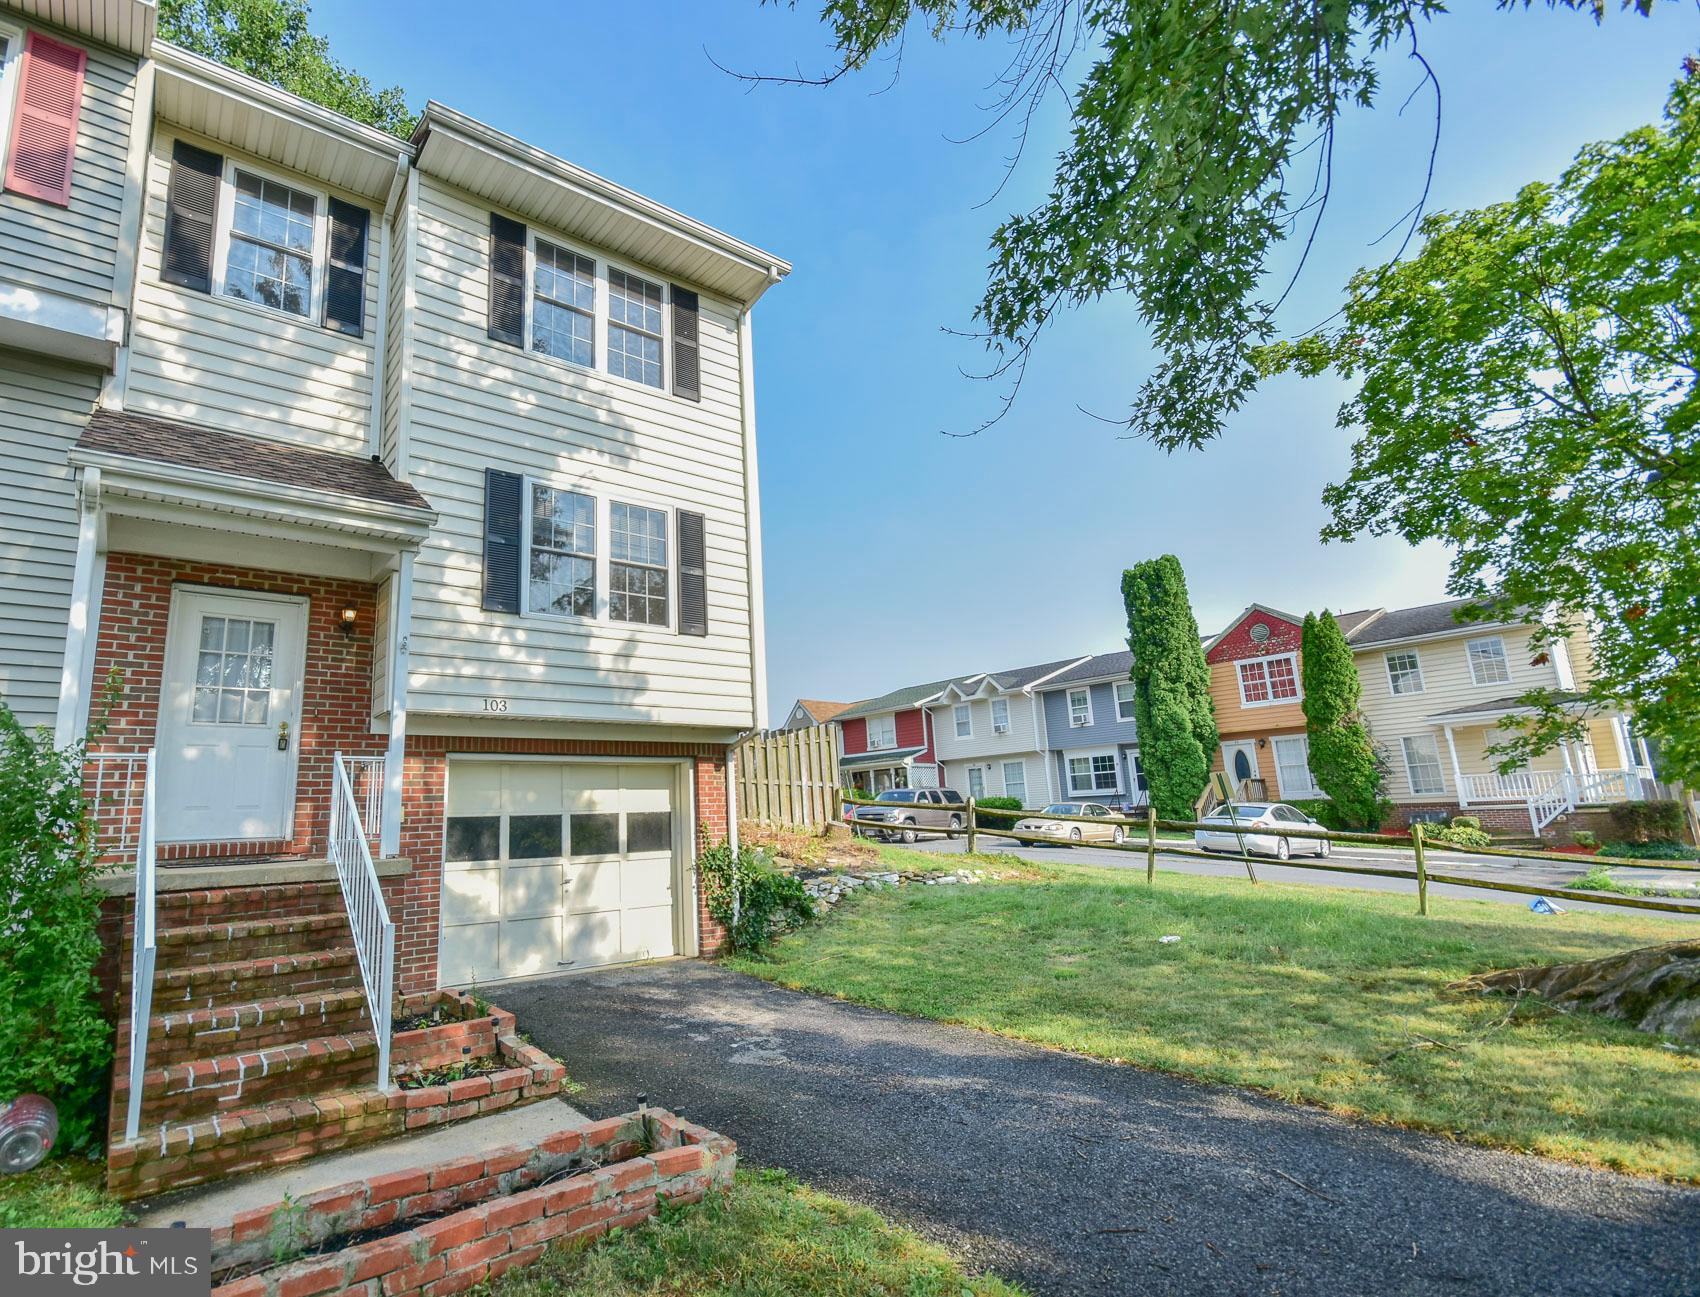 Affordable home in Charles Town!  This adorable end unit townhouse is conveniently located and well